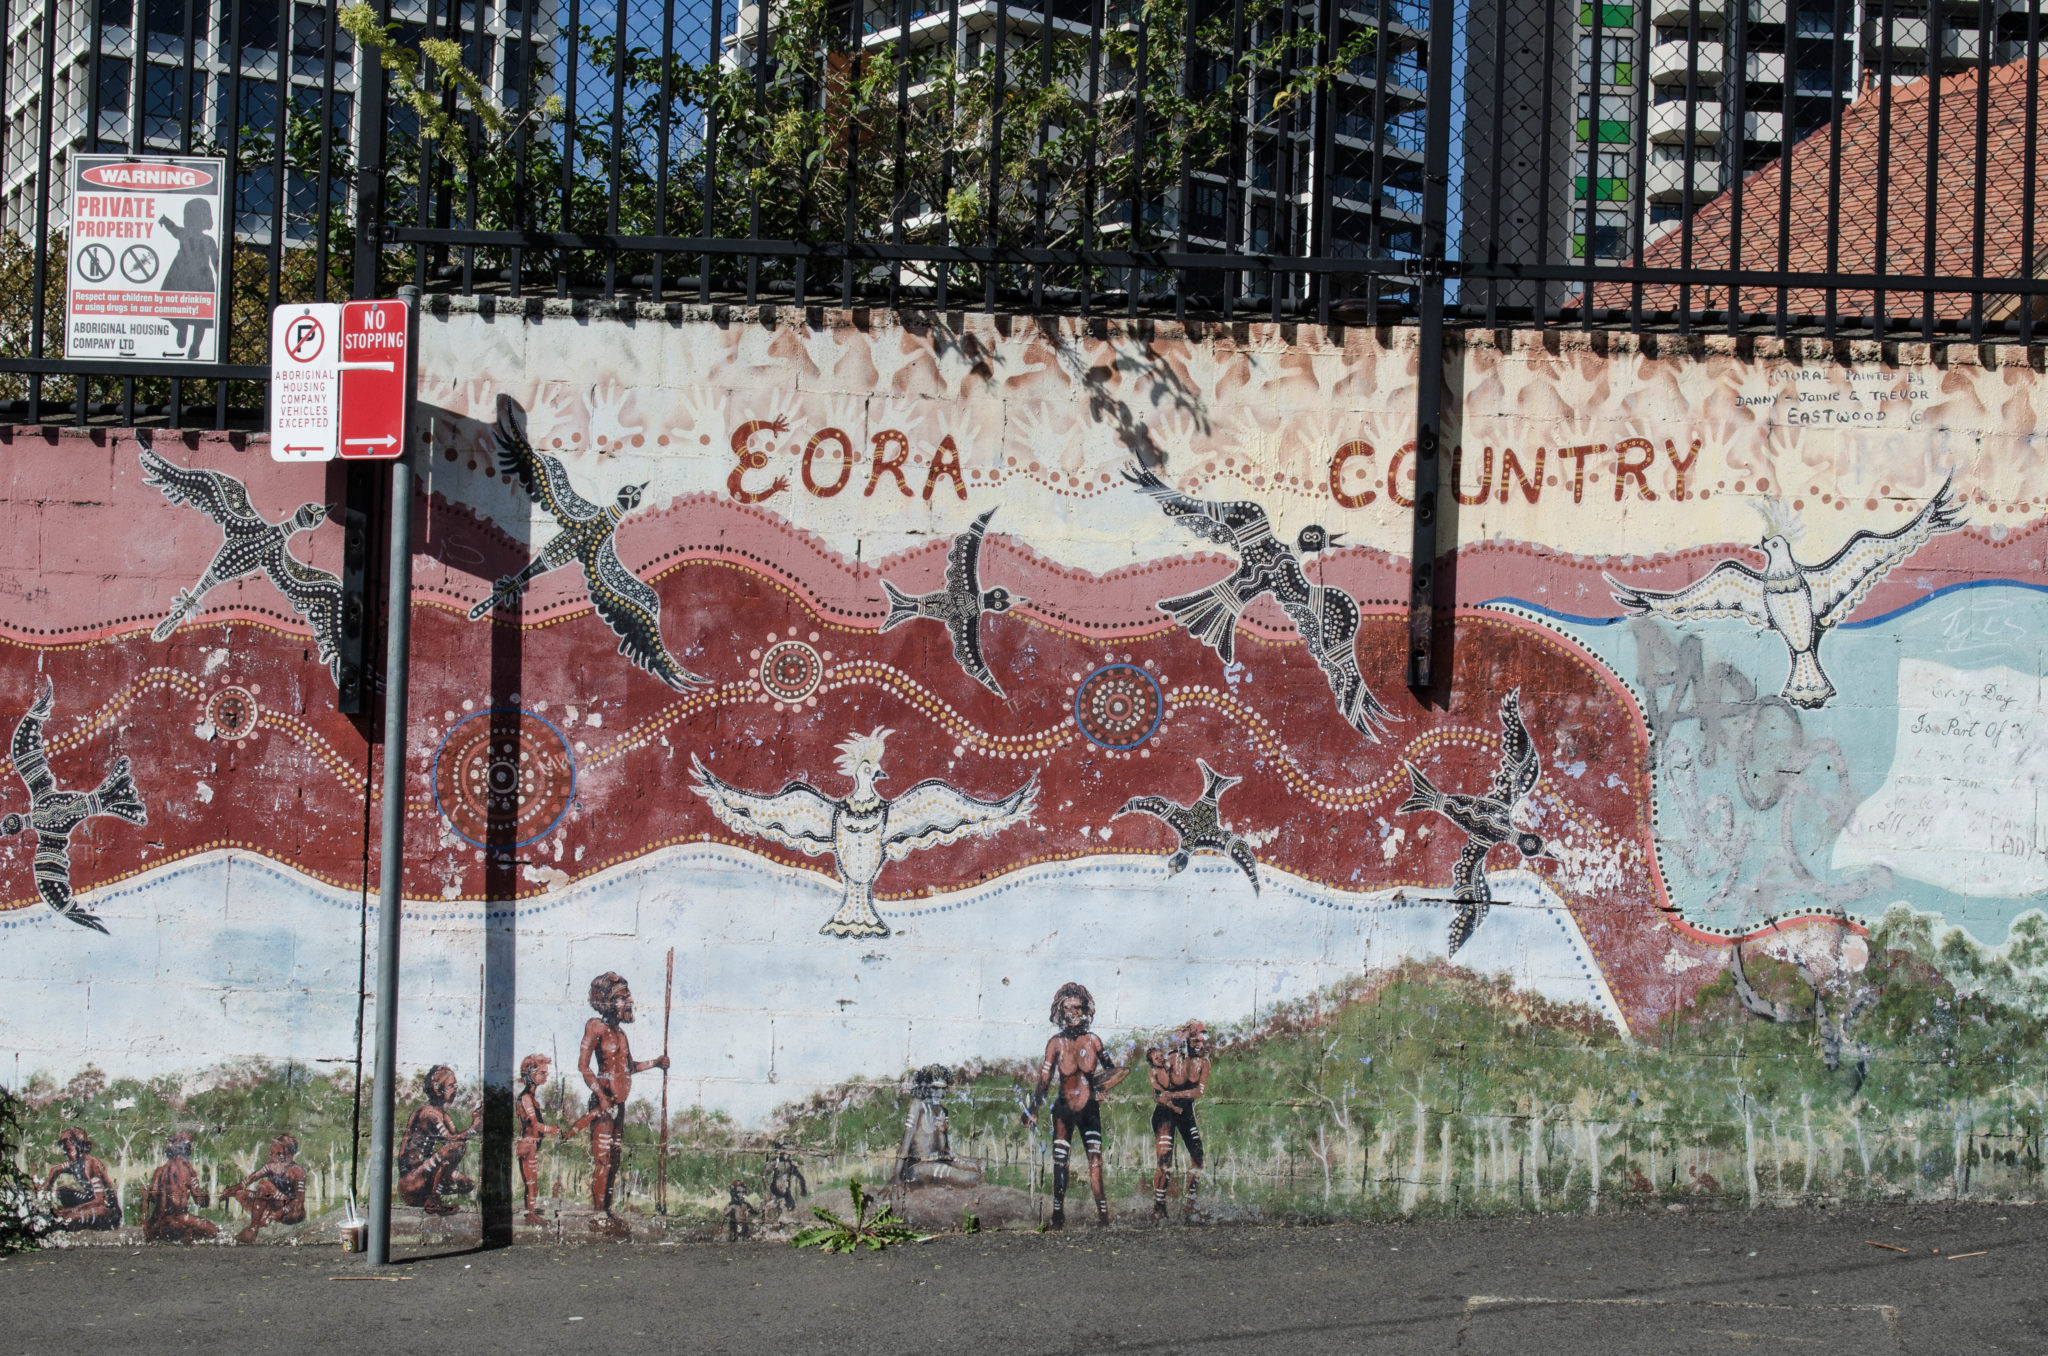 Redfern Sydney: Follow the murals to enter the new Redfern